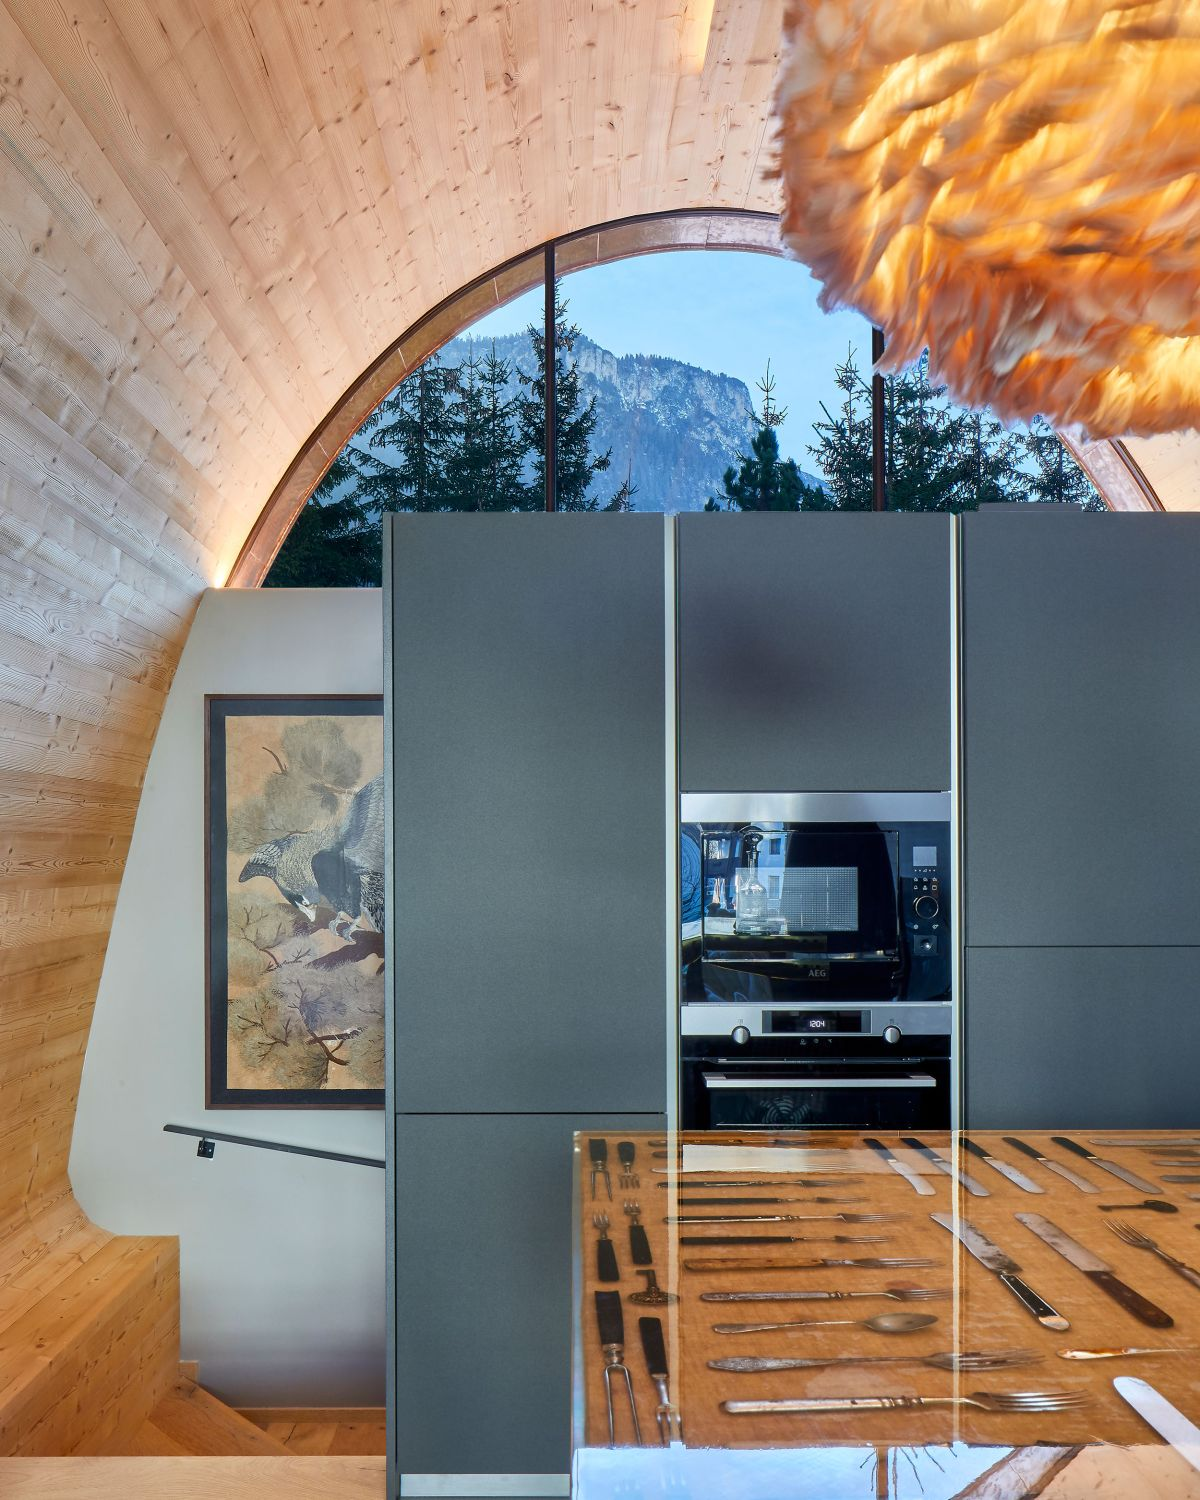 The interior is just as pleasant and cozy-looking as the exterior, featuring expansive wooden surfaces